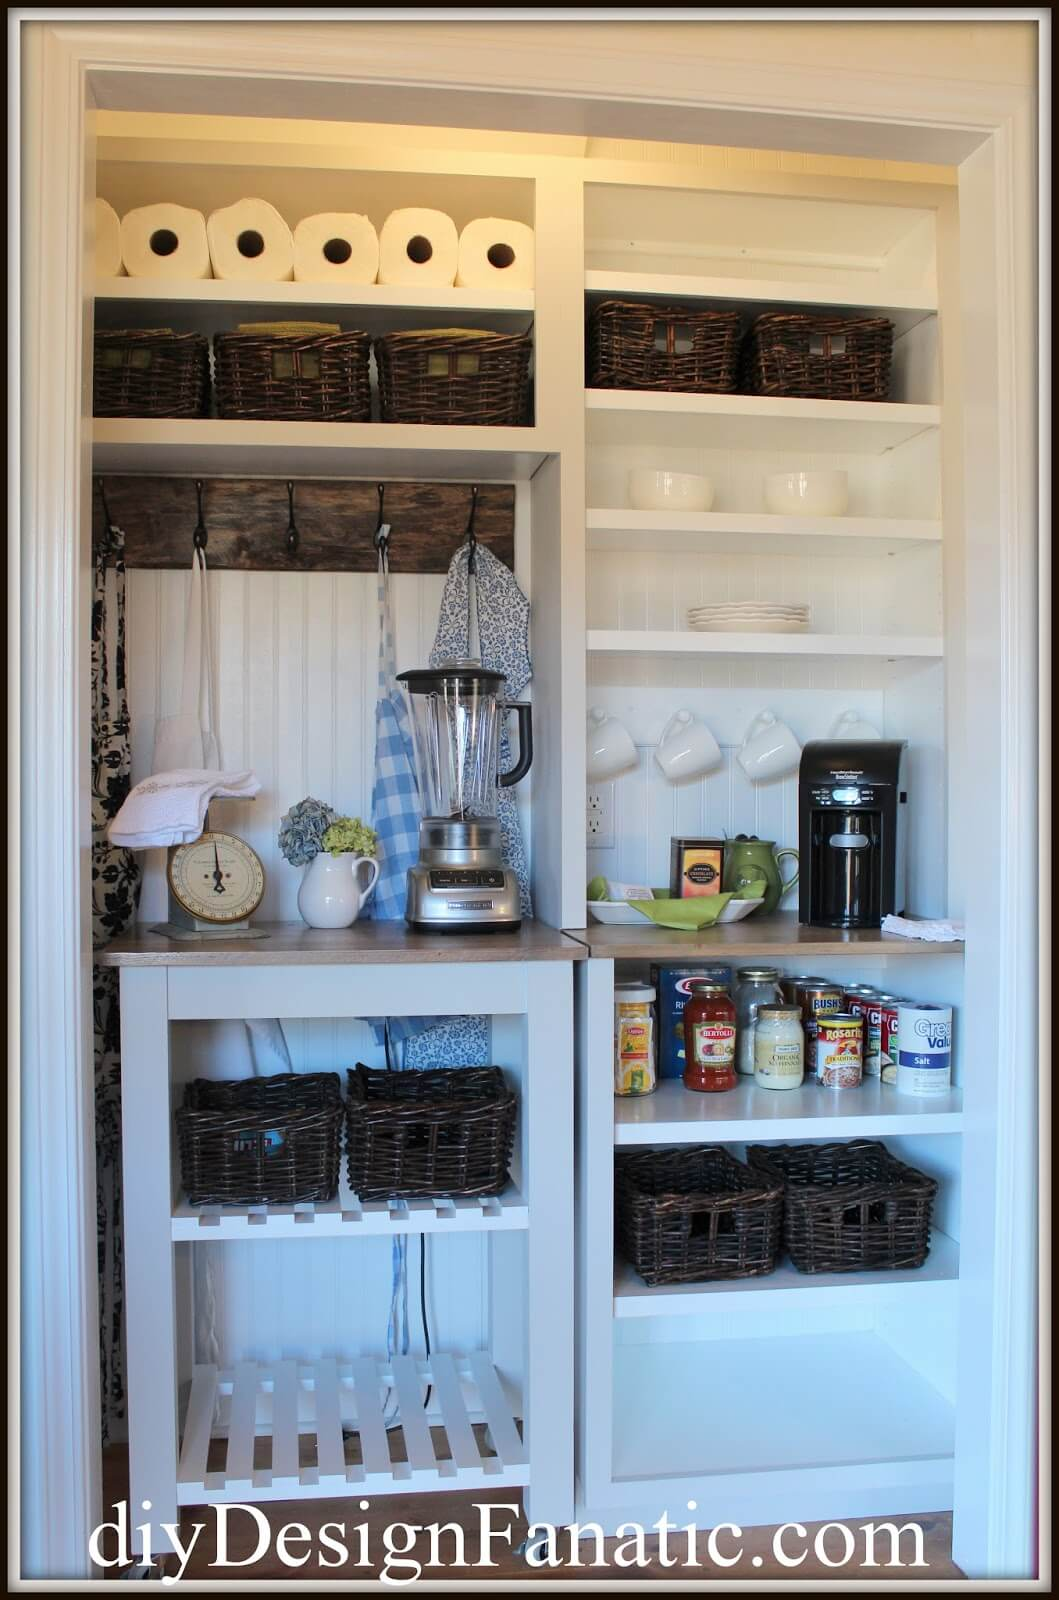 Custom Cabinets for a Transformed Closet Pantry